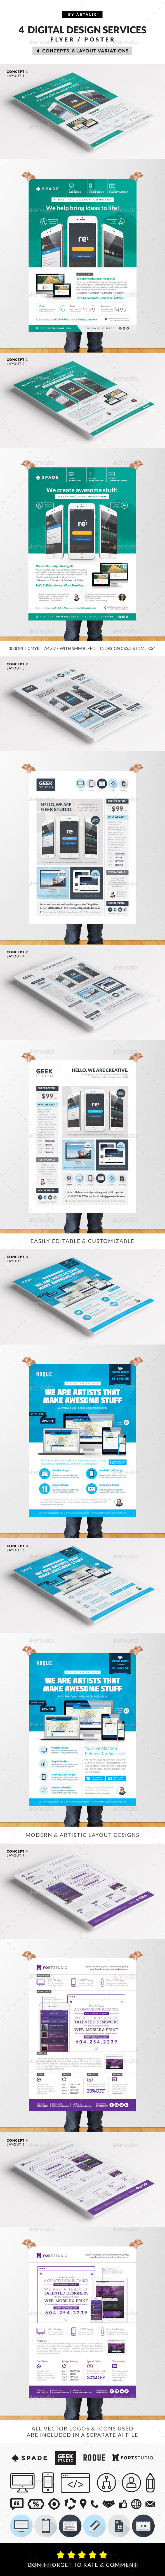 GraphicRiver 4 Design Web App Graphic Services Flyer Poster 9005525